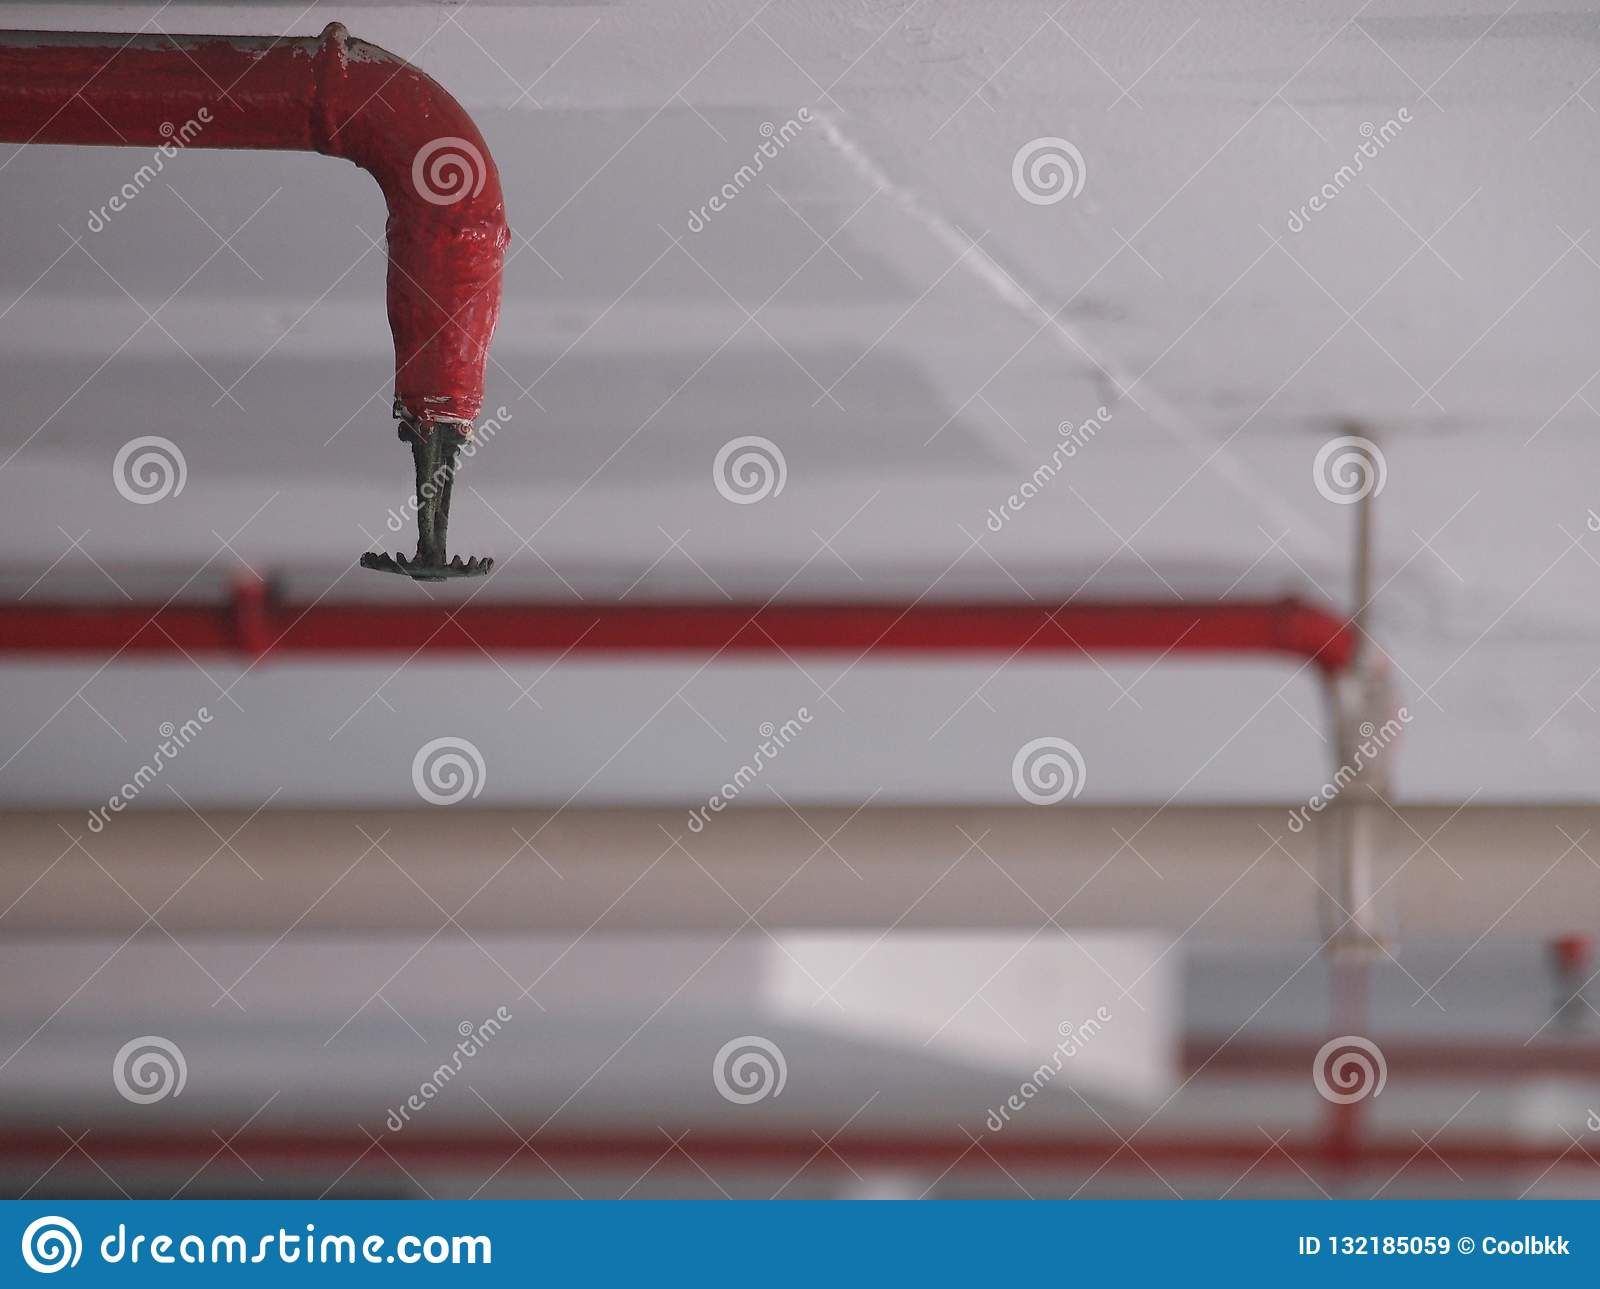 Automatic Fire Sprinkler In Red Water Pipe System Stock Image